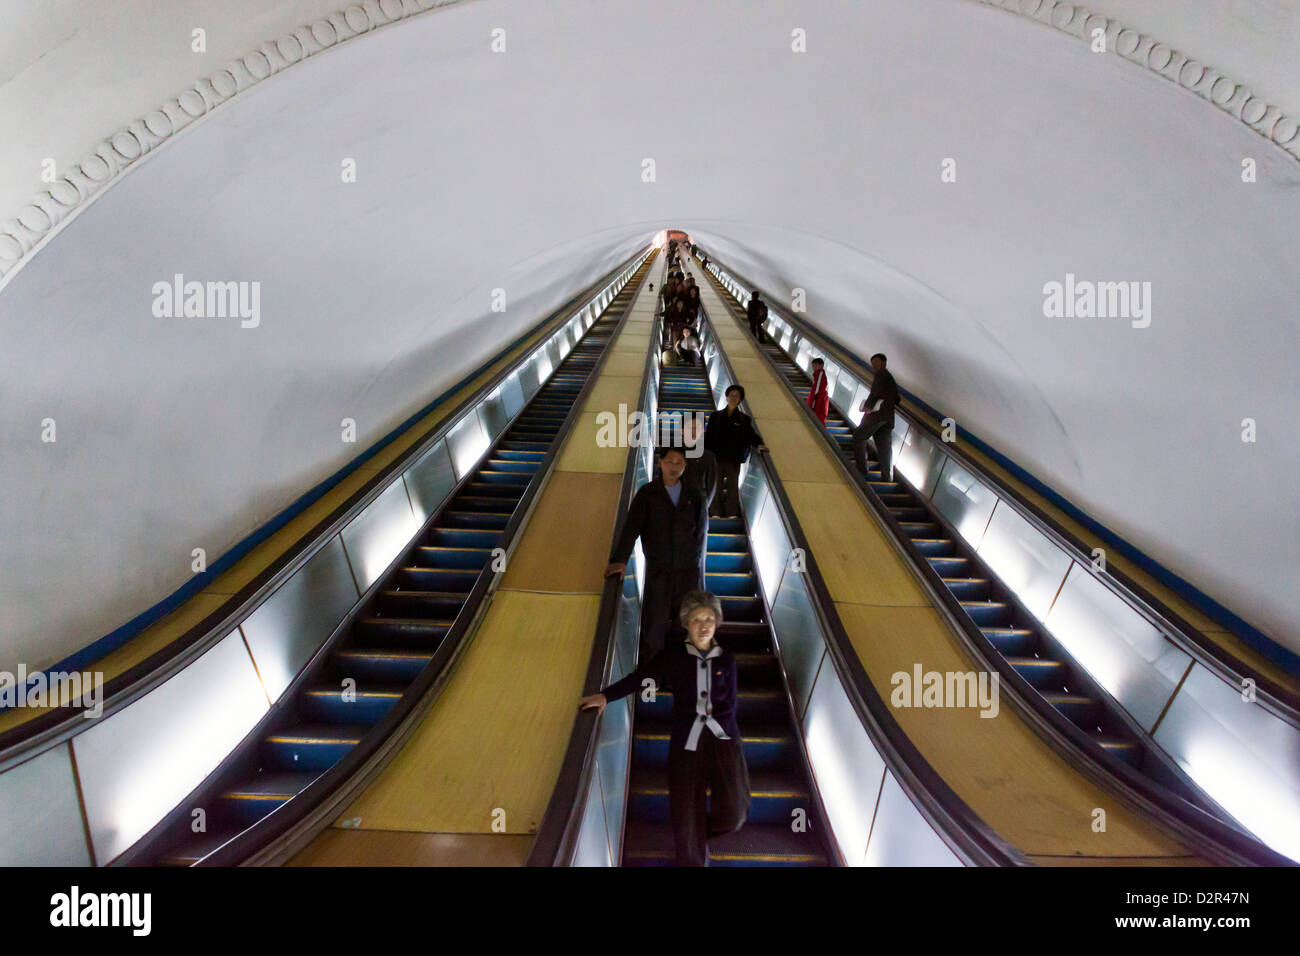 Punhung station, one of the many 100 metre deep subway stations on the Pyongyang subway network, Pyongyang, North - Stock Image